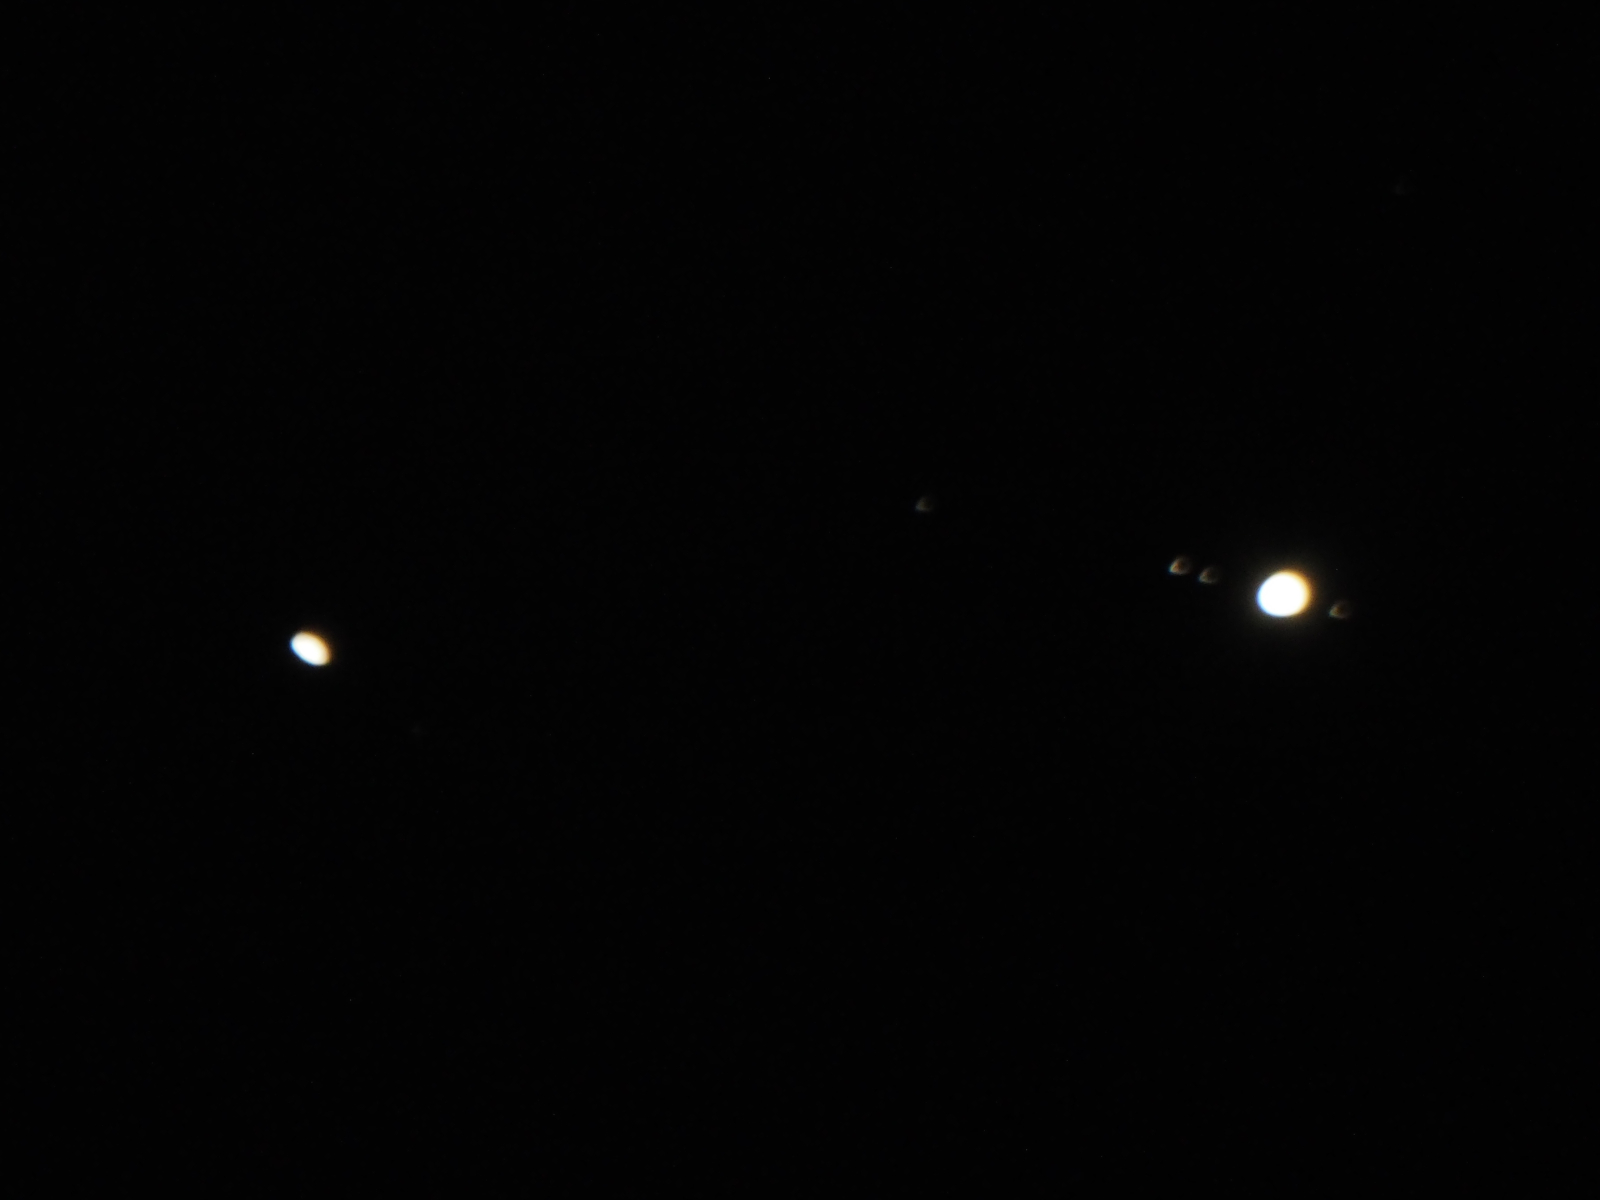 Jupiter and Saturn on Dec 18 - kc-pc186049a